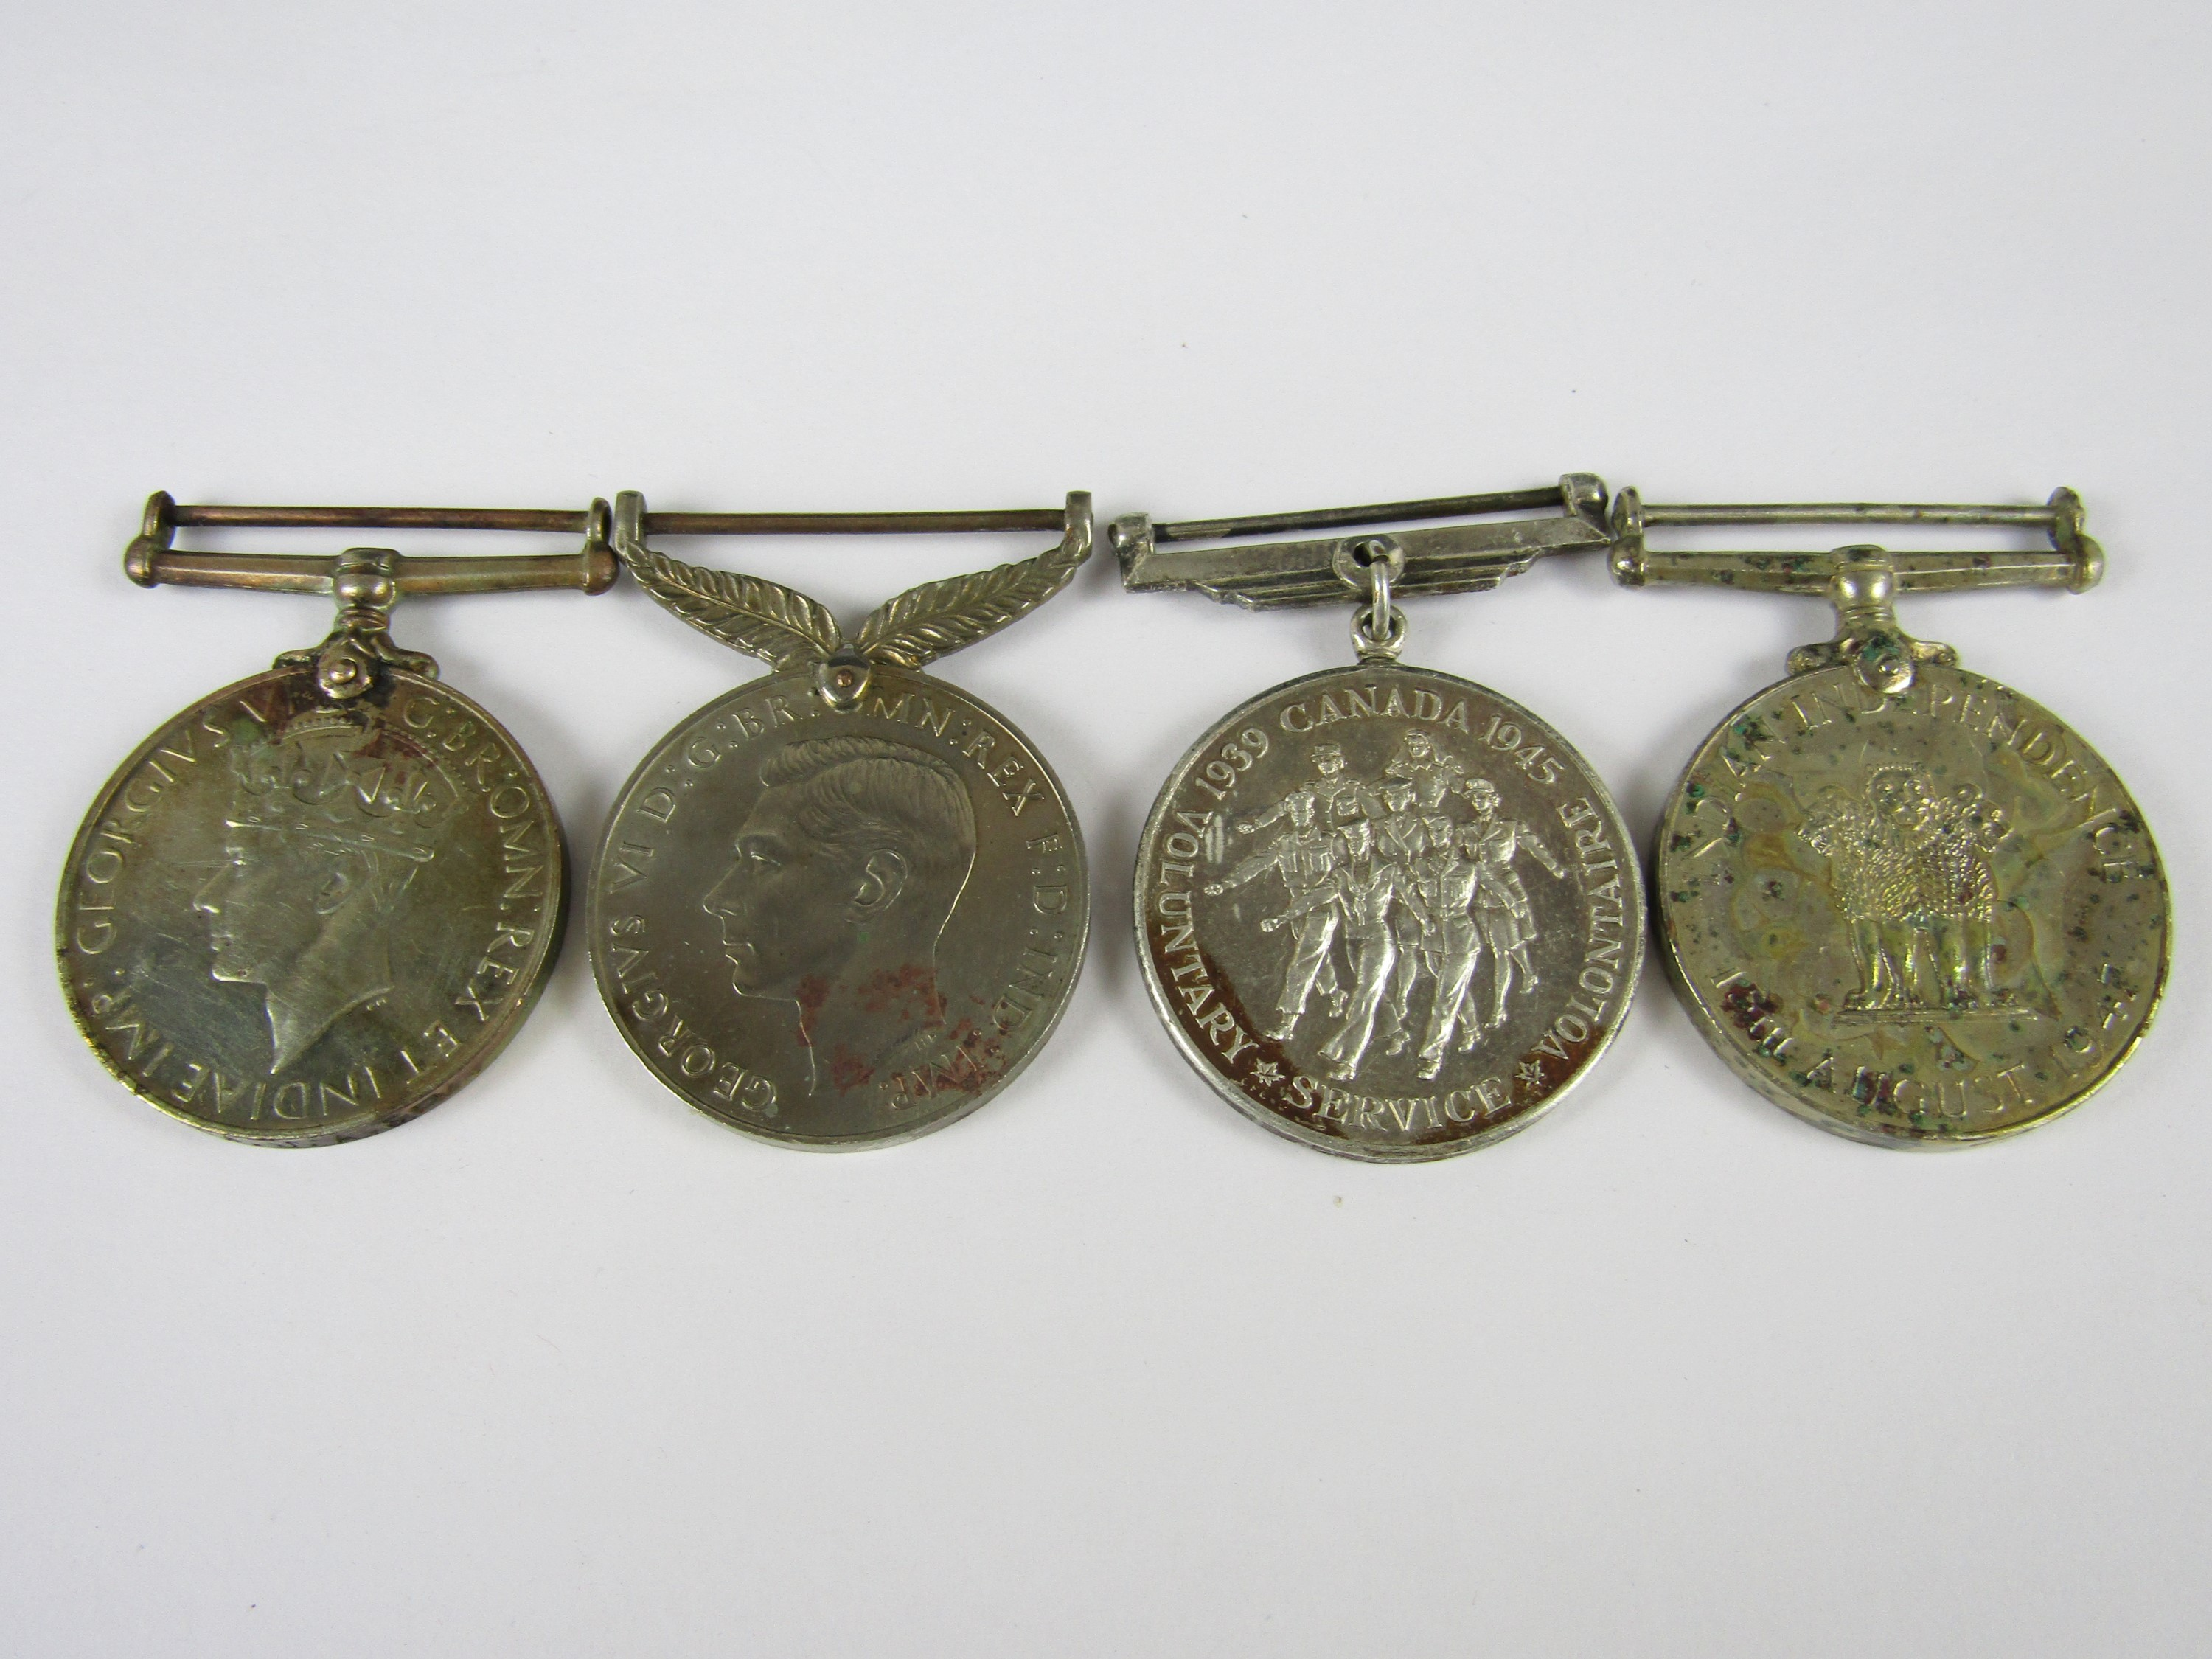 Lot 2 - Australian, New Zealand and Canadian Second World War service medals, and an Indian Independence